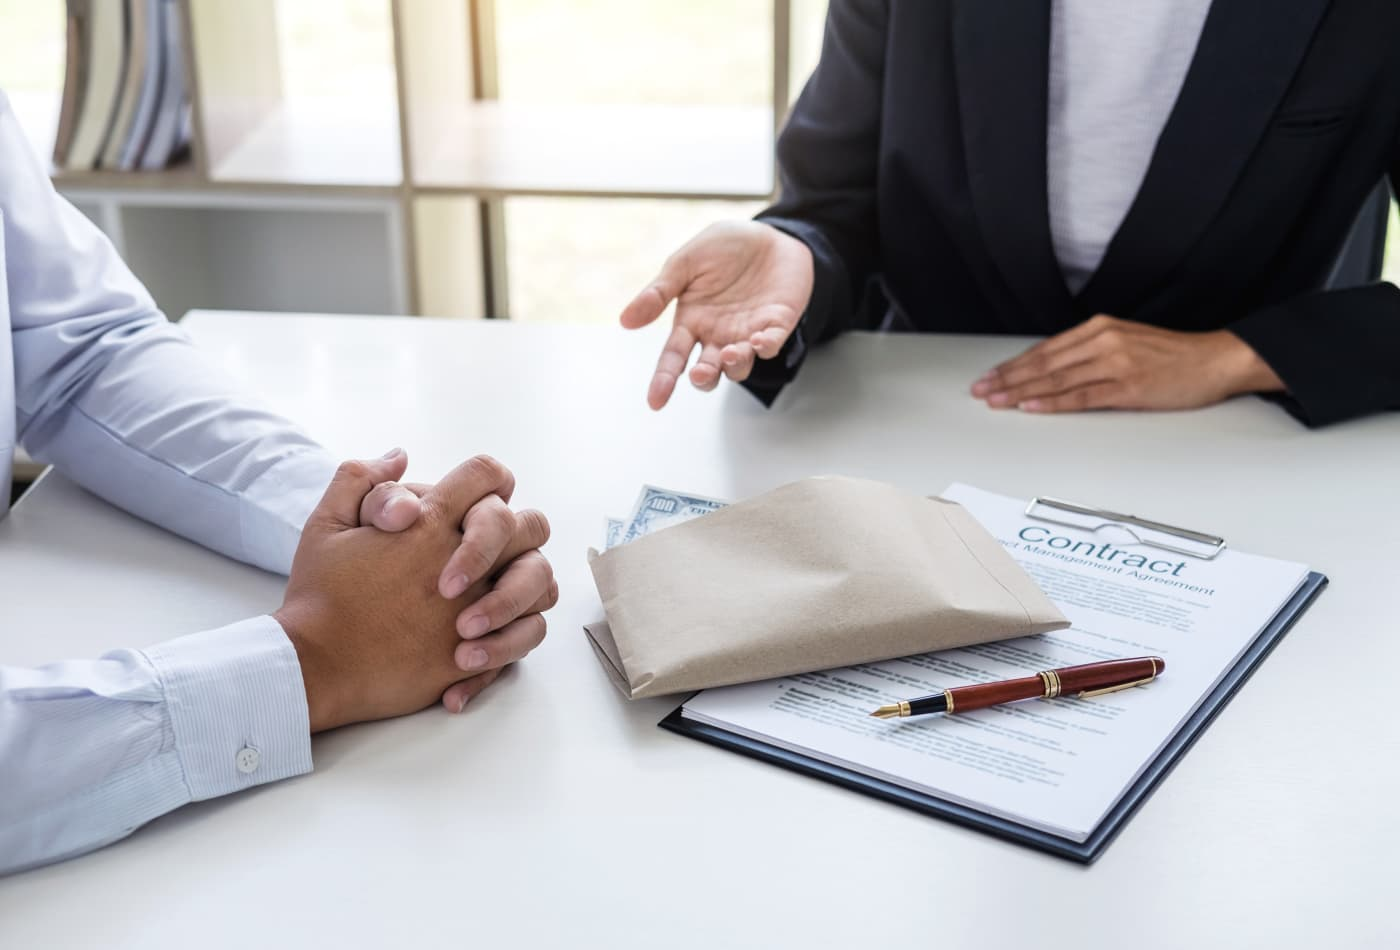 Interview tips: Salary negotiation, how to respond to questions on pay